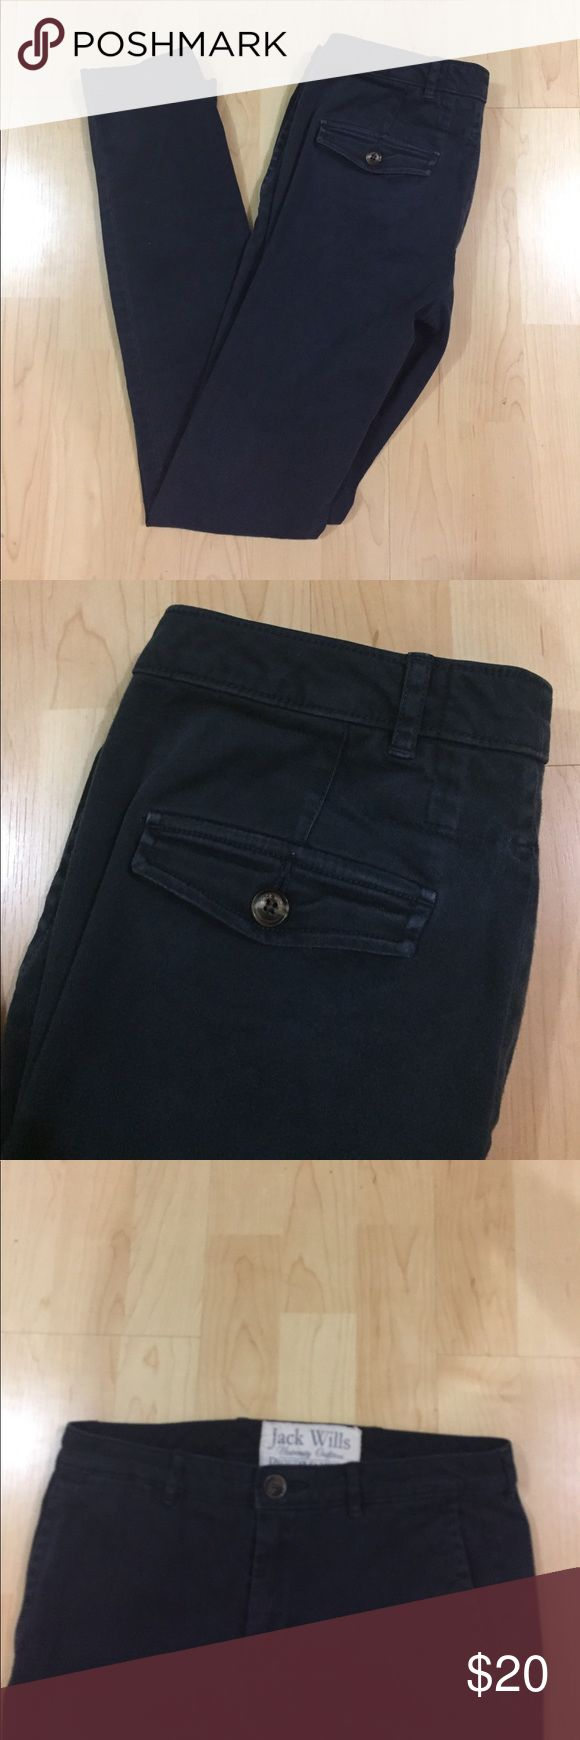 Jack Wills Women's Blue Chinos These Jack Wills pants are in great condition and a nice blue color. They aren't jeans, more of a clean style trouser chino pant with Brown buttons. They fit true to size 2. Selling because they are too big and long on me (I am 00 and 5ft tall) Jack Wills Pants Trousers